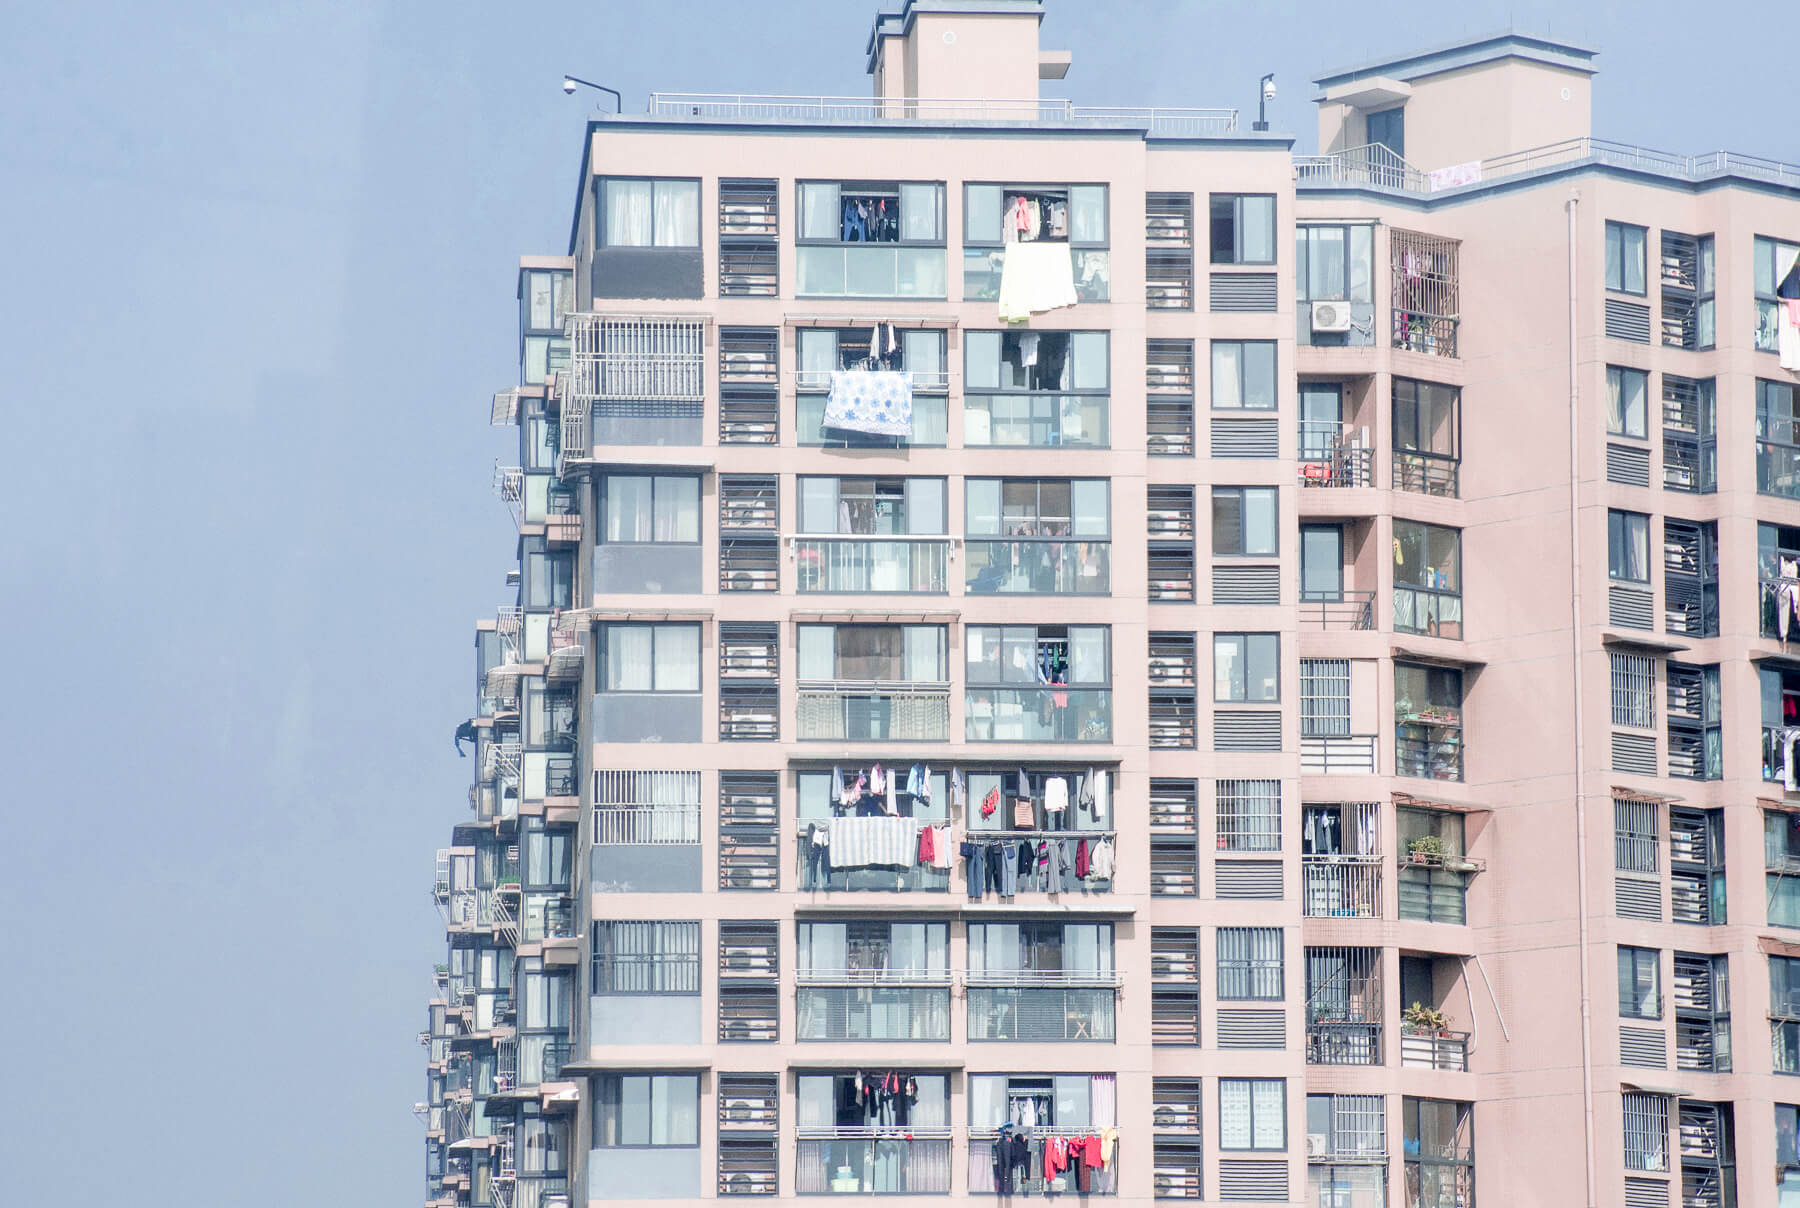 Tall highrise buildings in China with washing hanging over the balcony